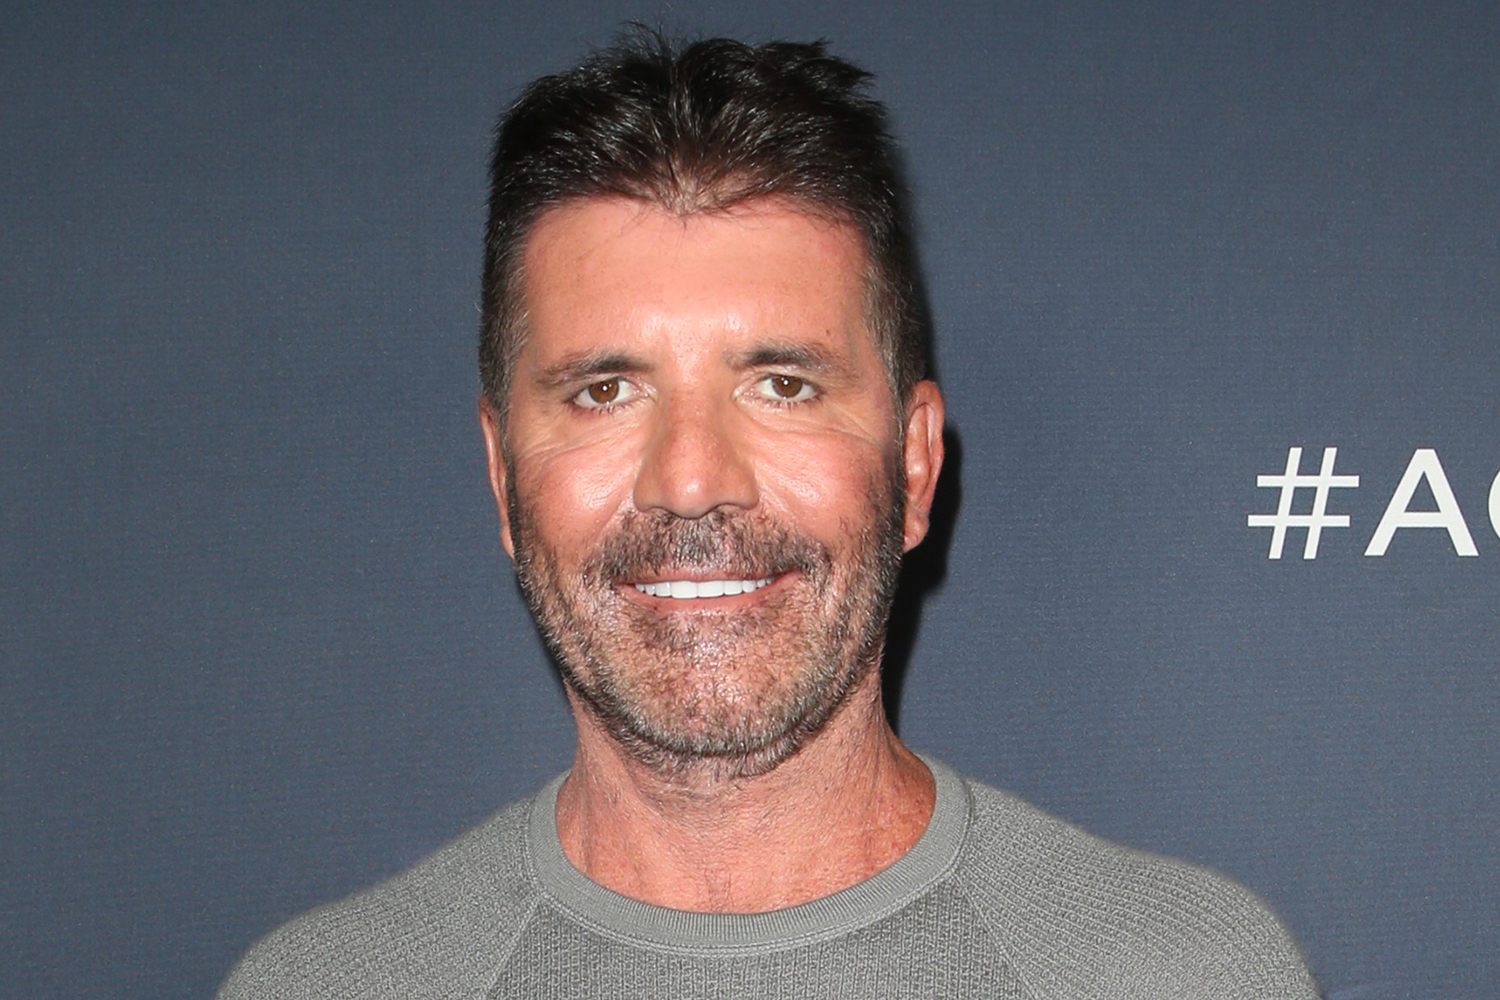 Simon Cowell continues to pay BGT staff despite live shows being cancelled